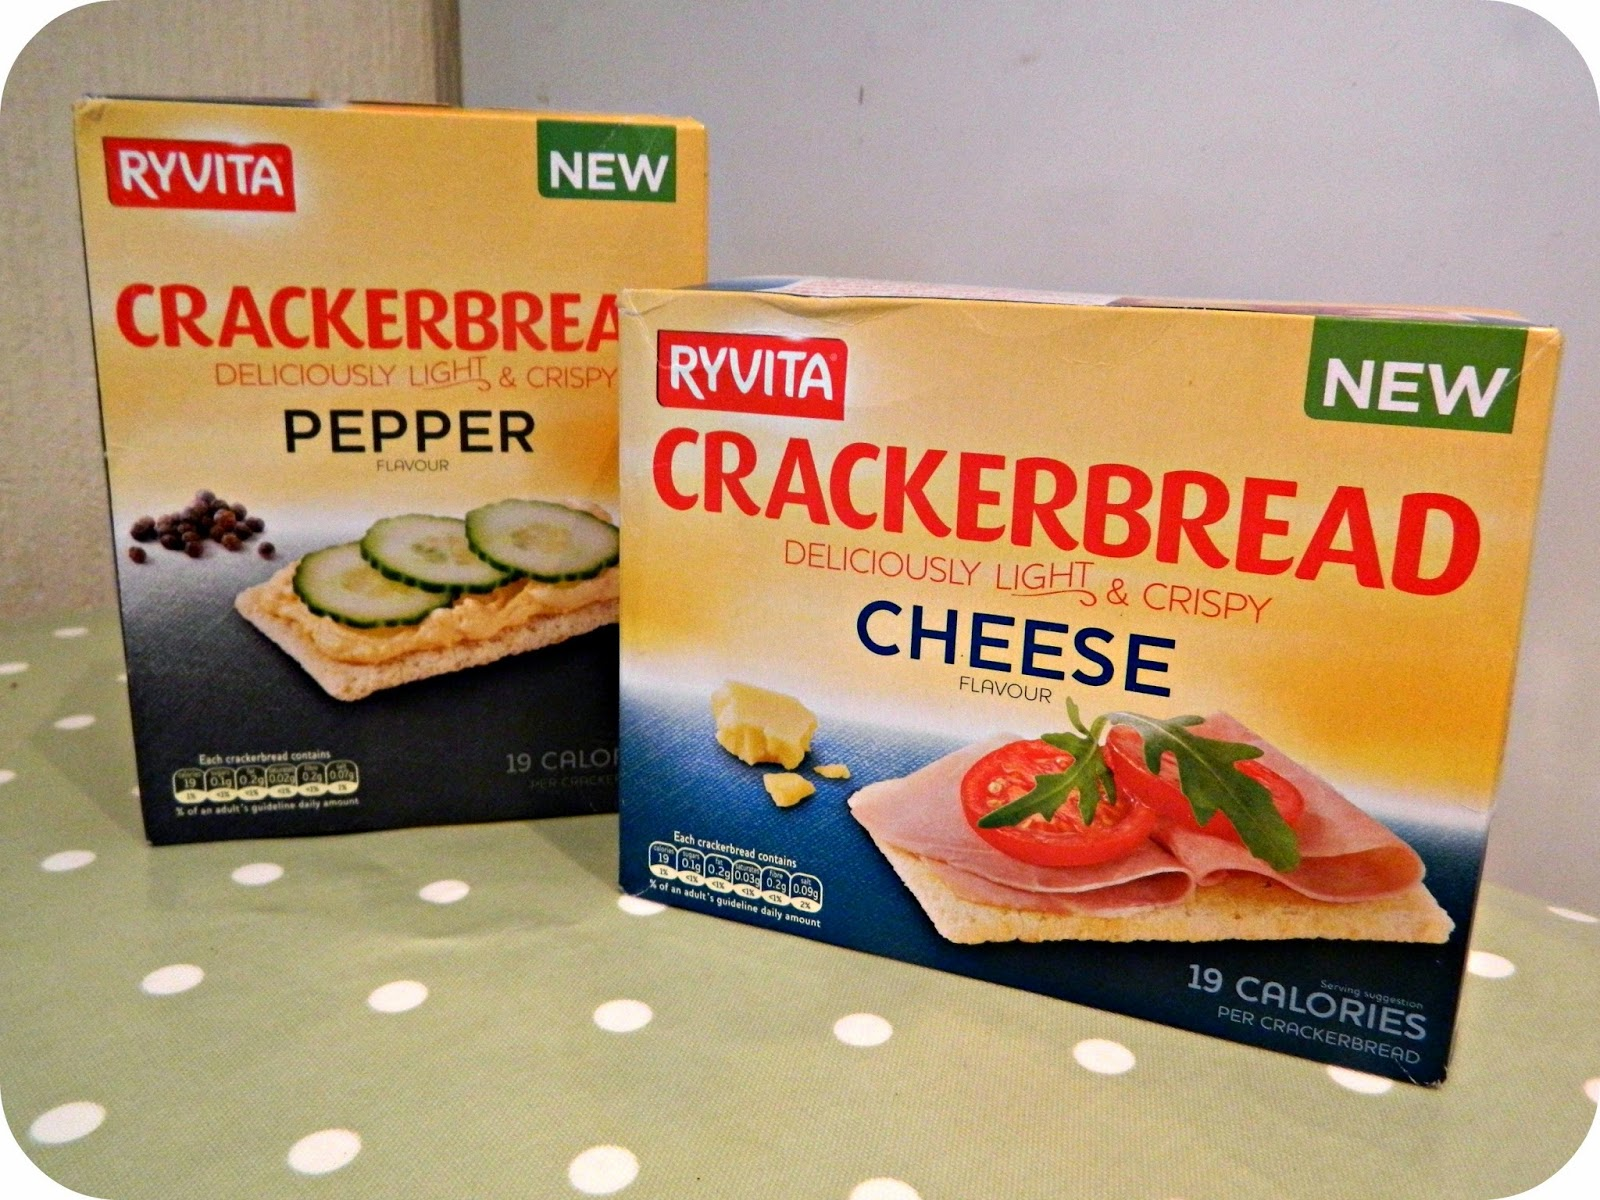 Ryvita Crackerbread Cheese and Pepper